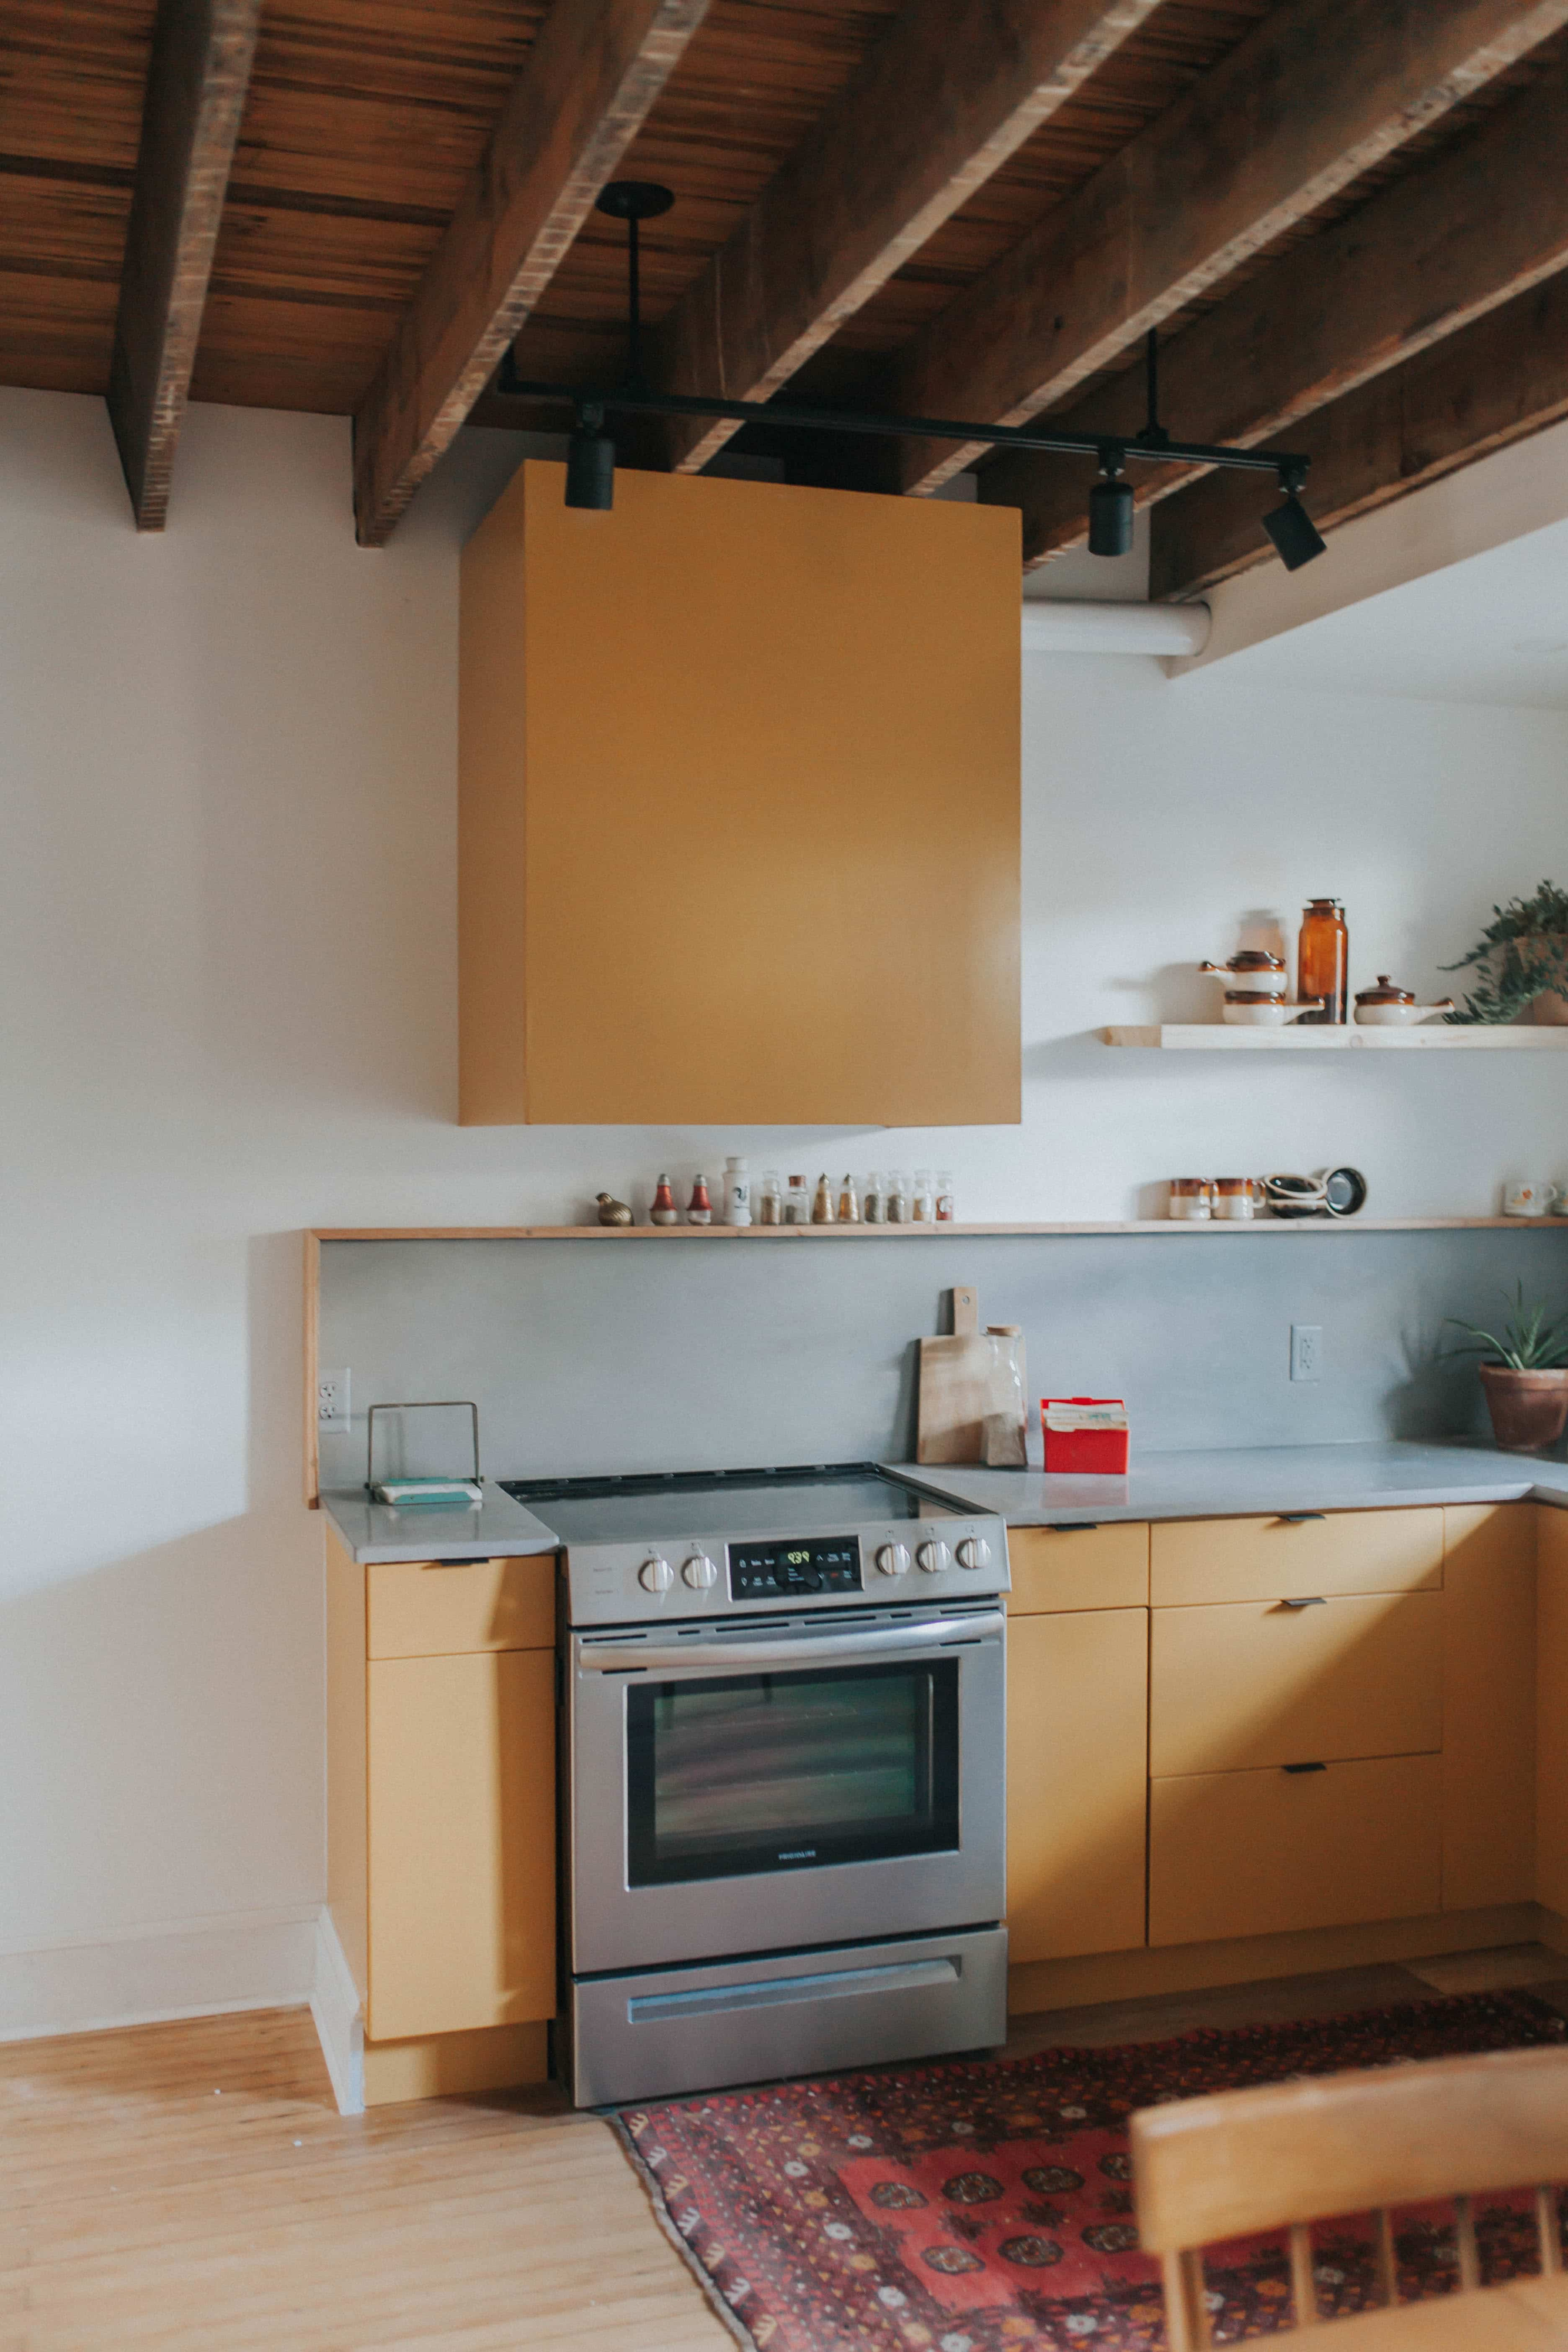 Retro kitchen with concrete countertops and Persian rug